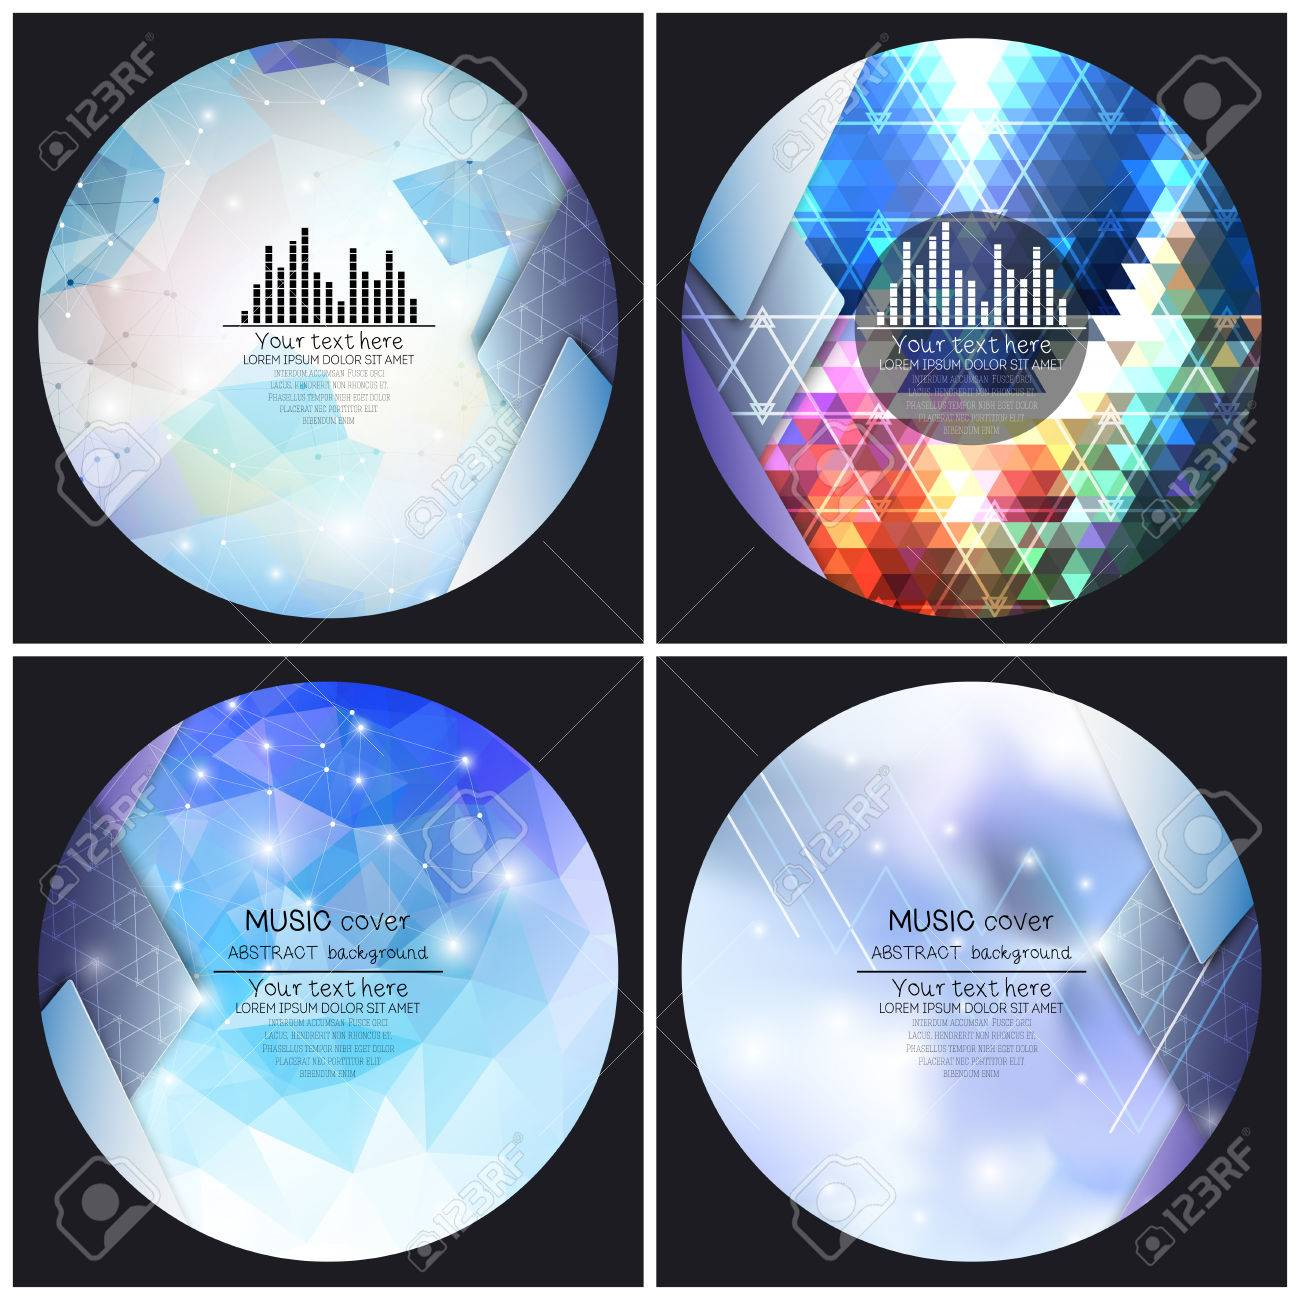 set of 4 music album cover templates abstract backgrounds set of 4 music album cover templates abstract backgrounds geometrical patterns triangular style